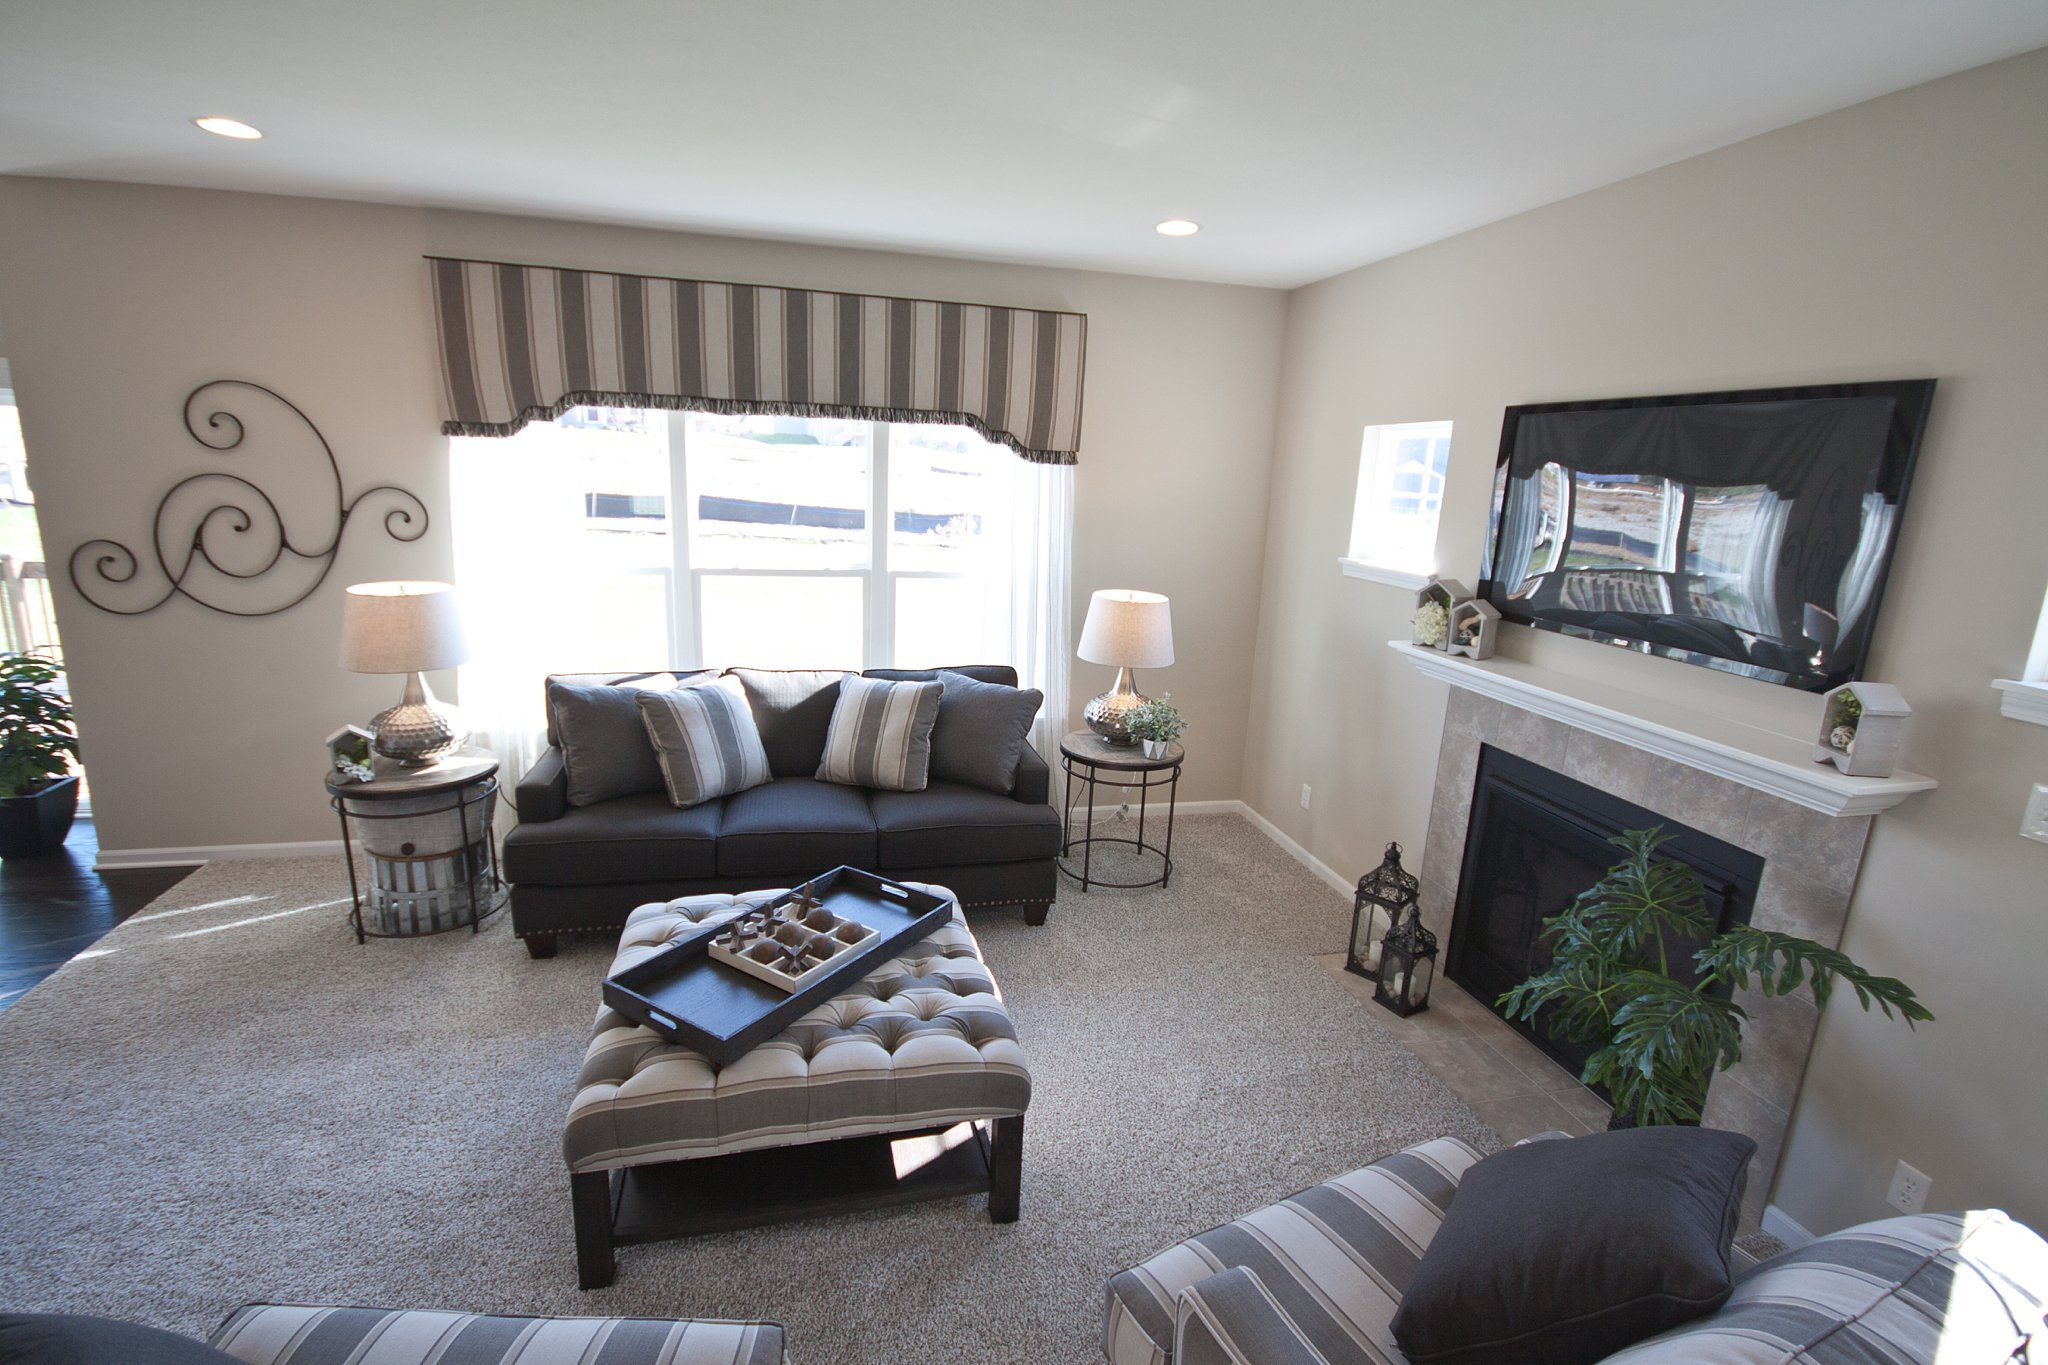 Living Area featured in the Baymont By Olthof Homes in Gary, IN